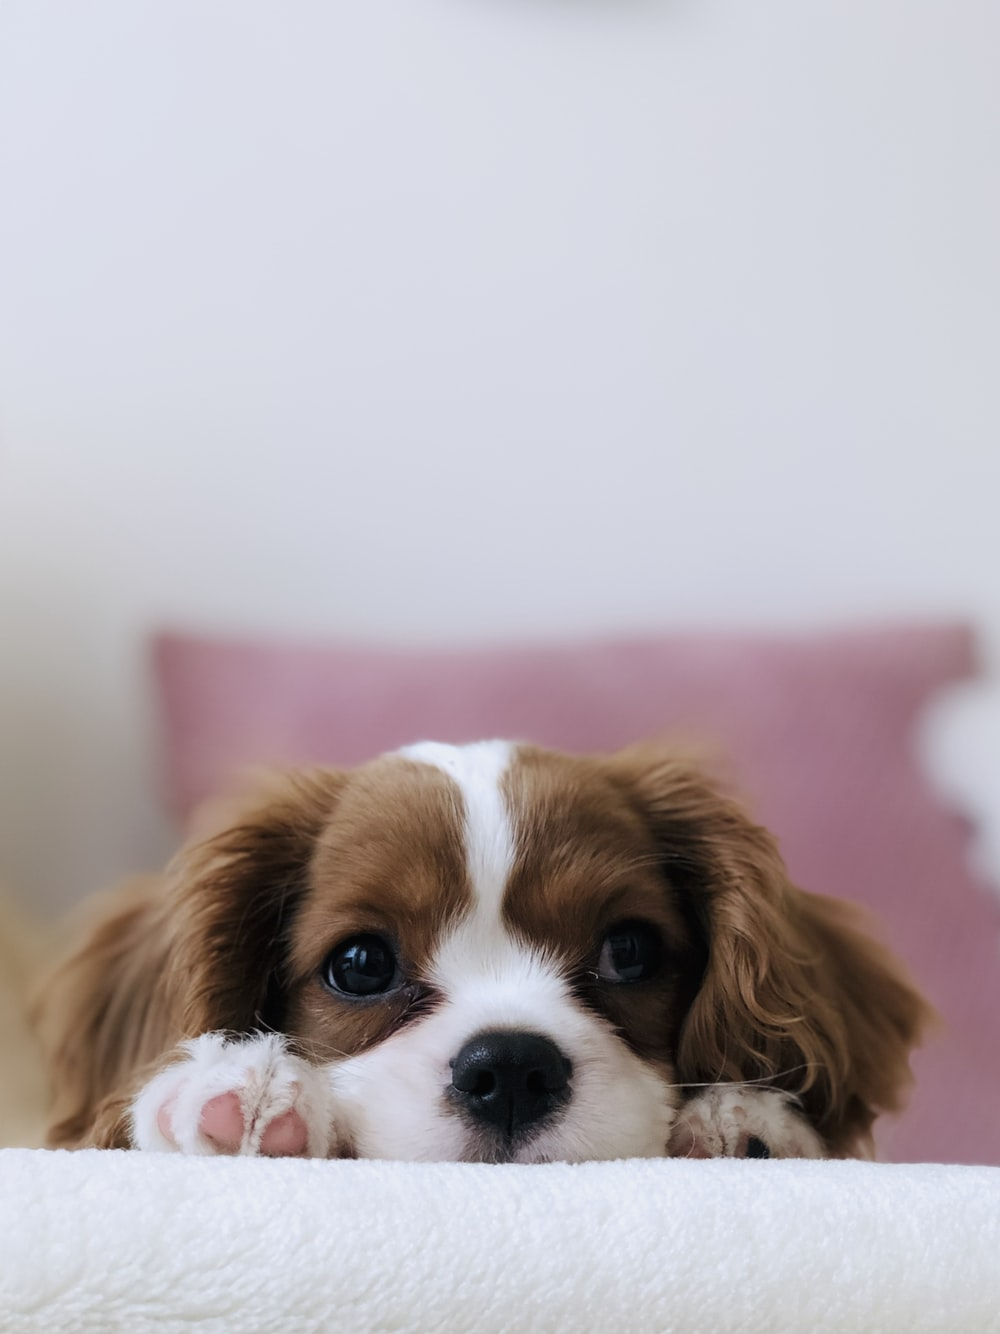 Puppy Wallpapers: Free HD Download [500+ HQ]